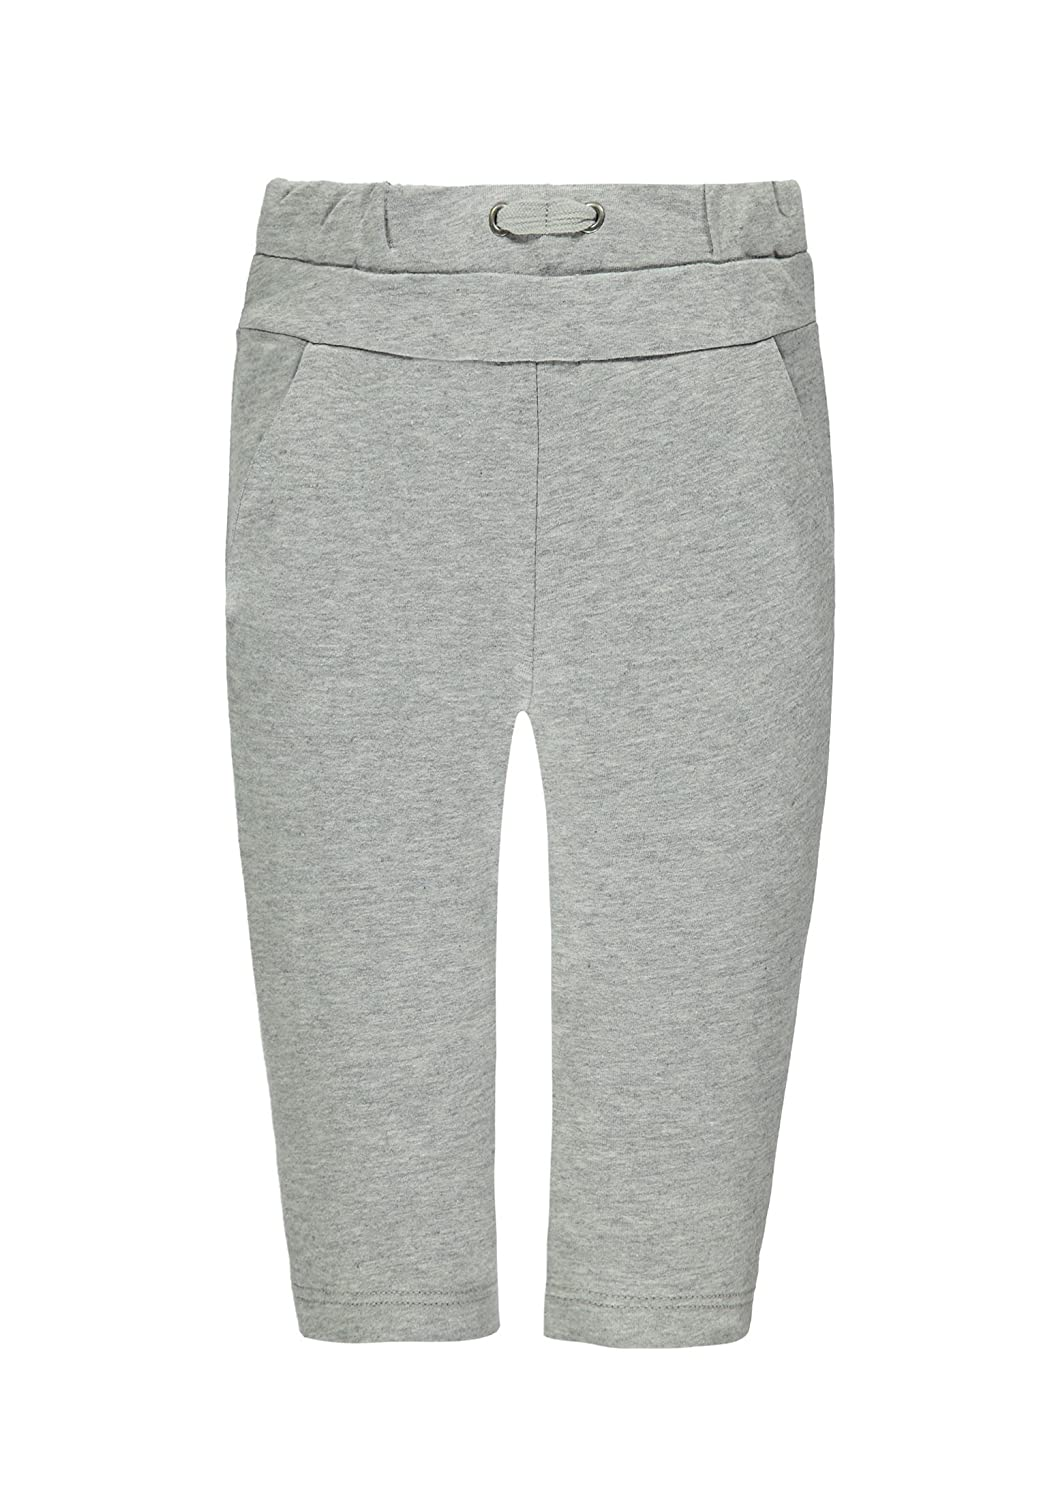 Steiff Boy's Jogginghose Trousers Steiff Collection 6712716